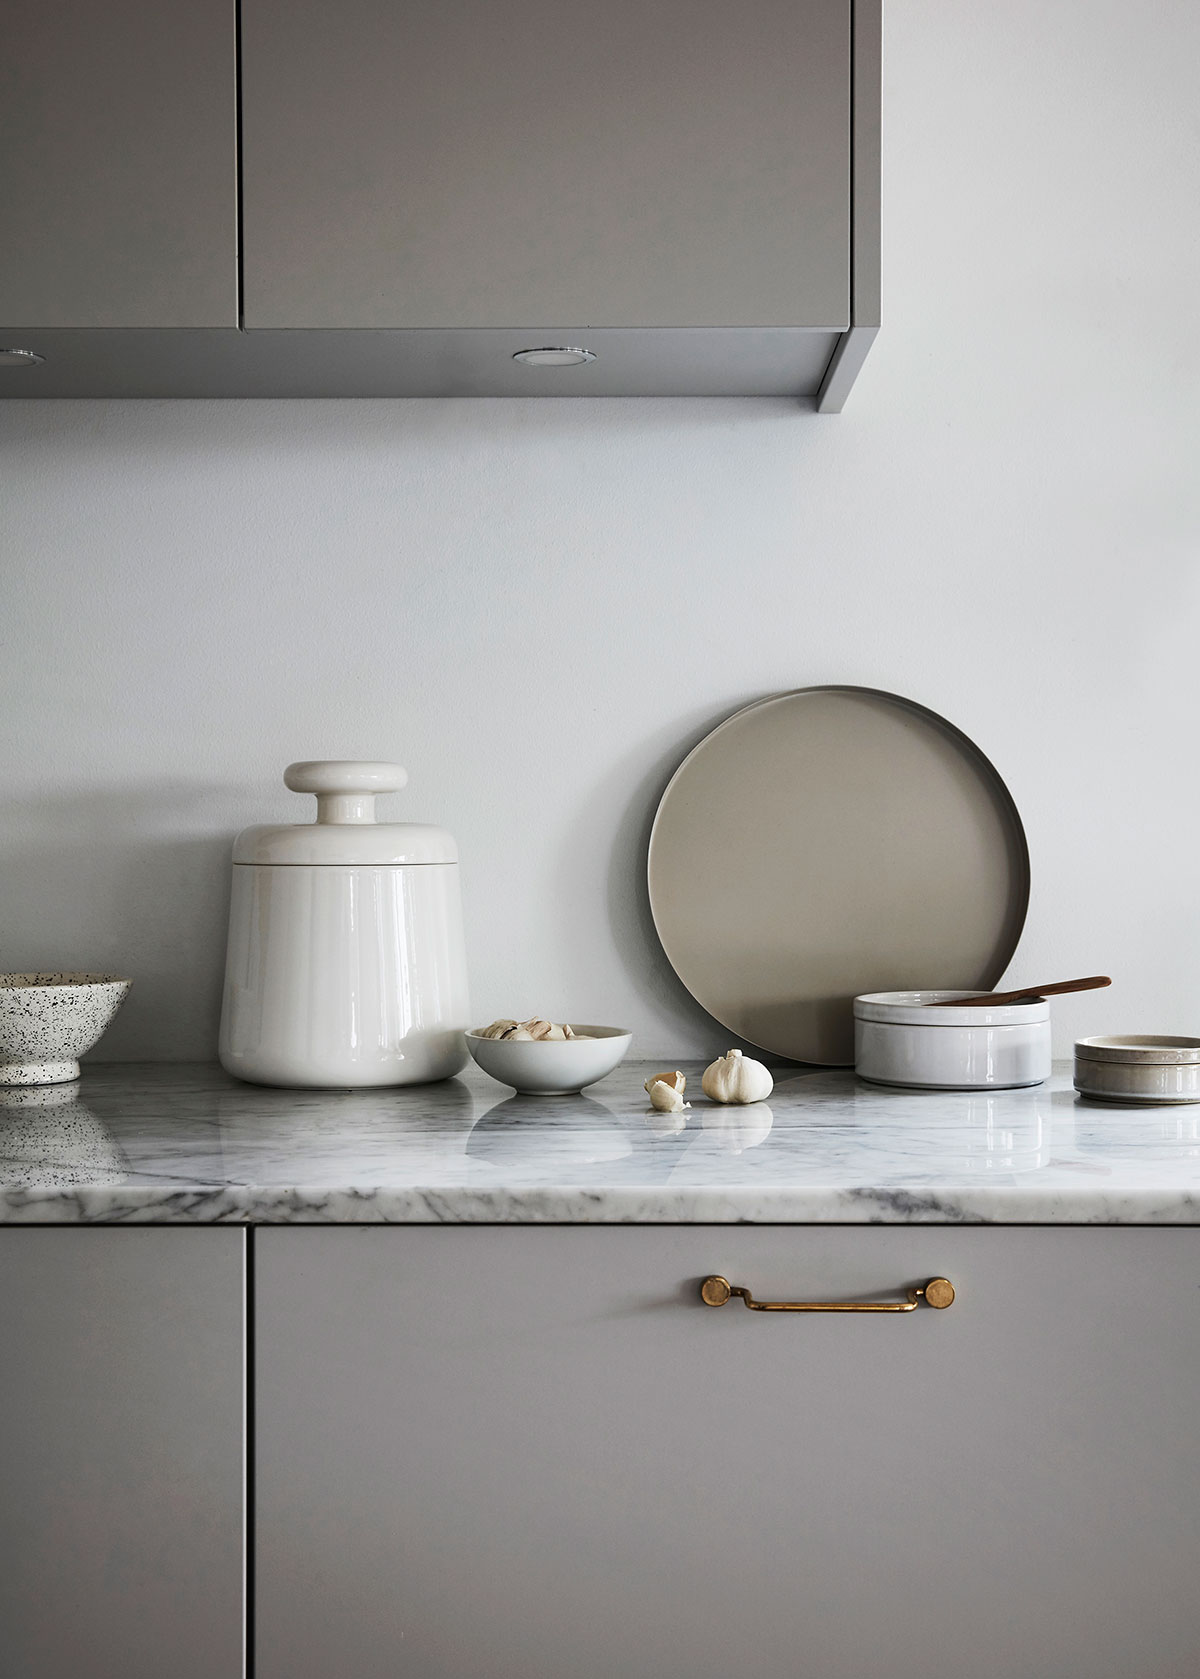 Minimalist grey kitchen in modern design with cooee plate